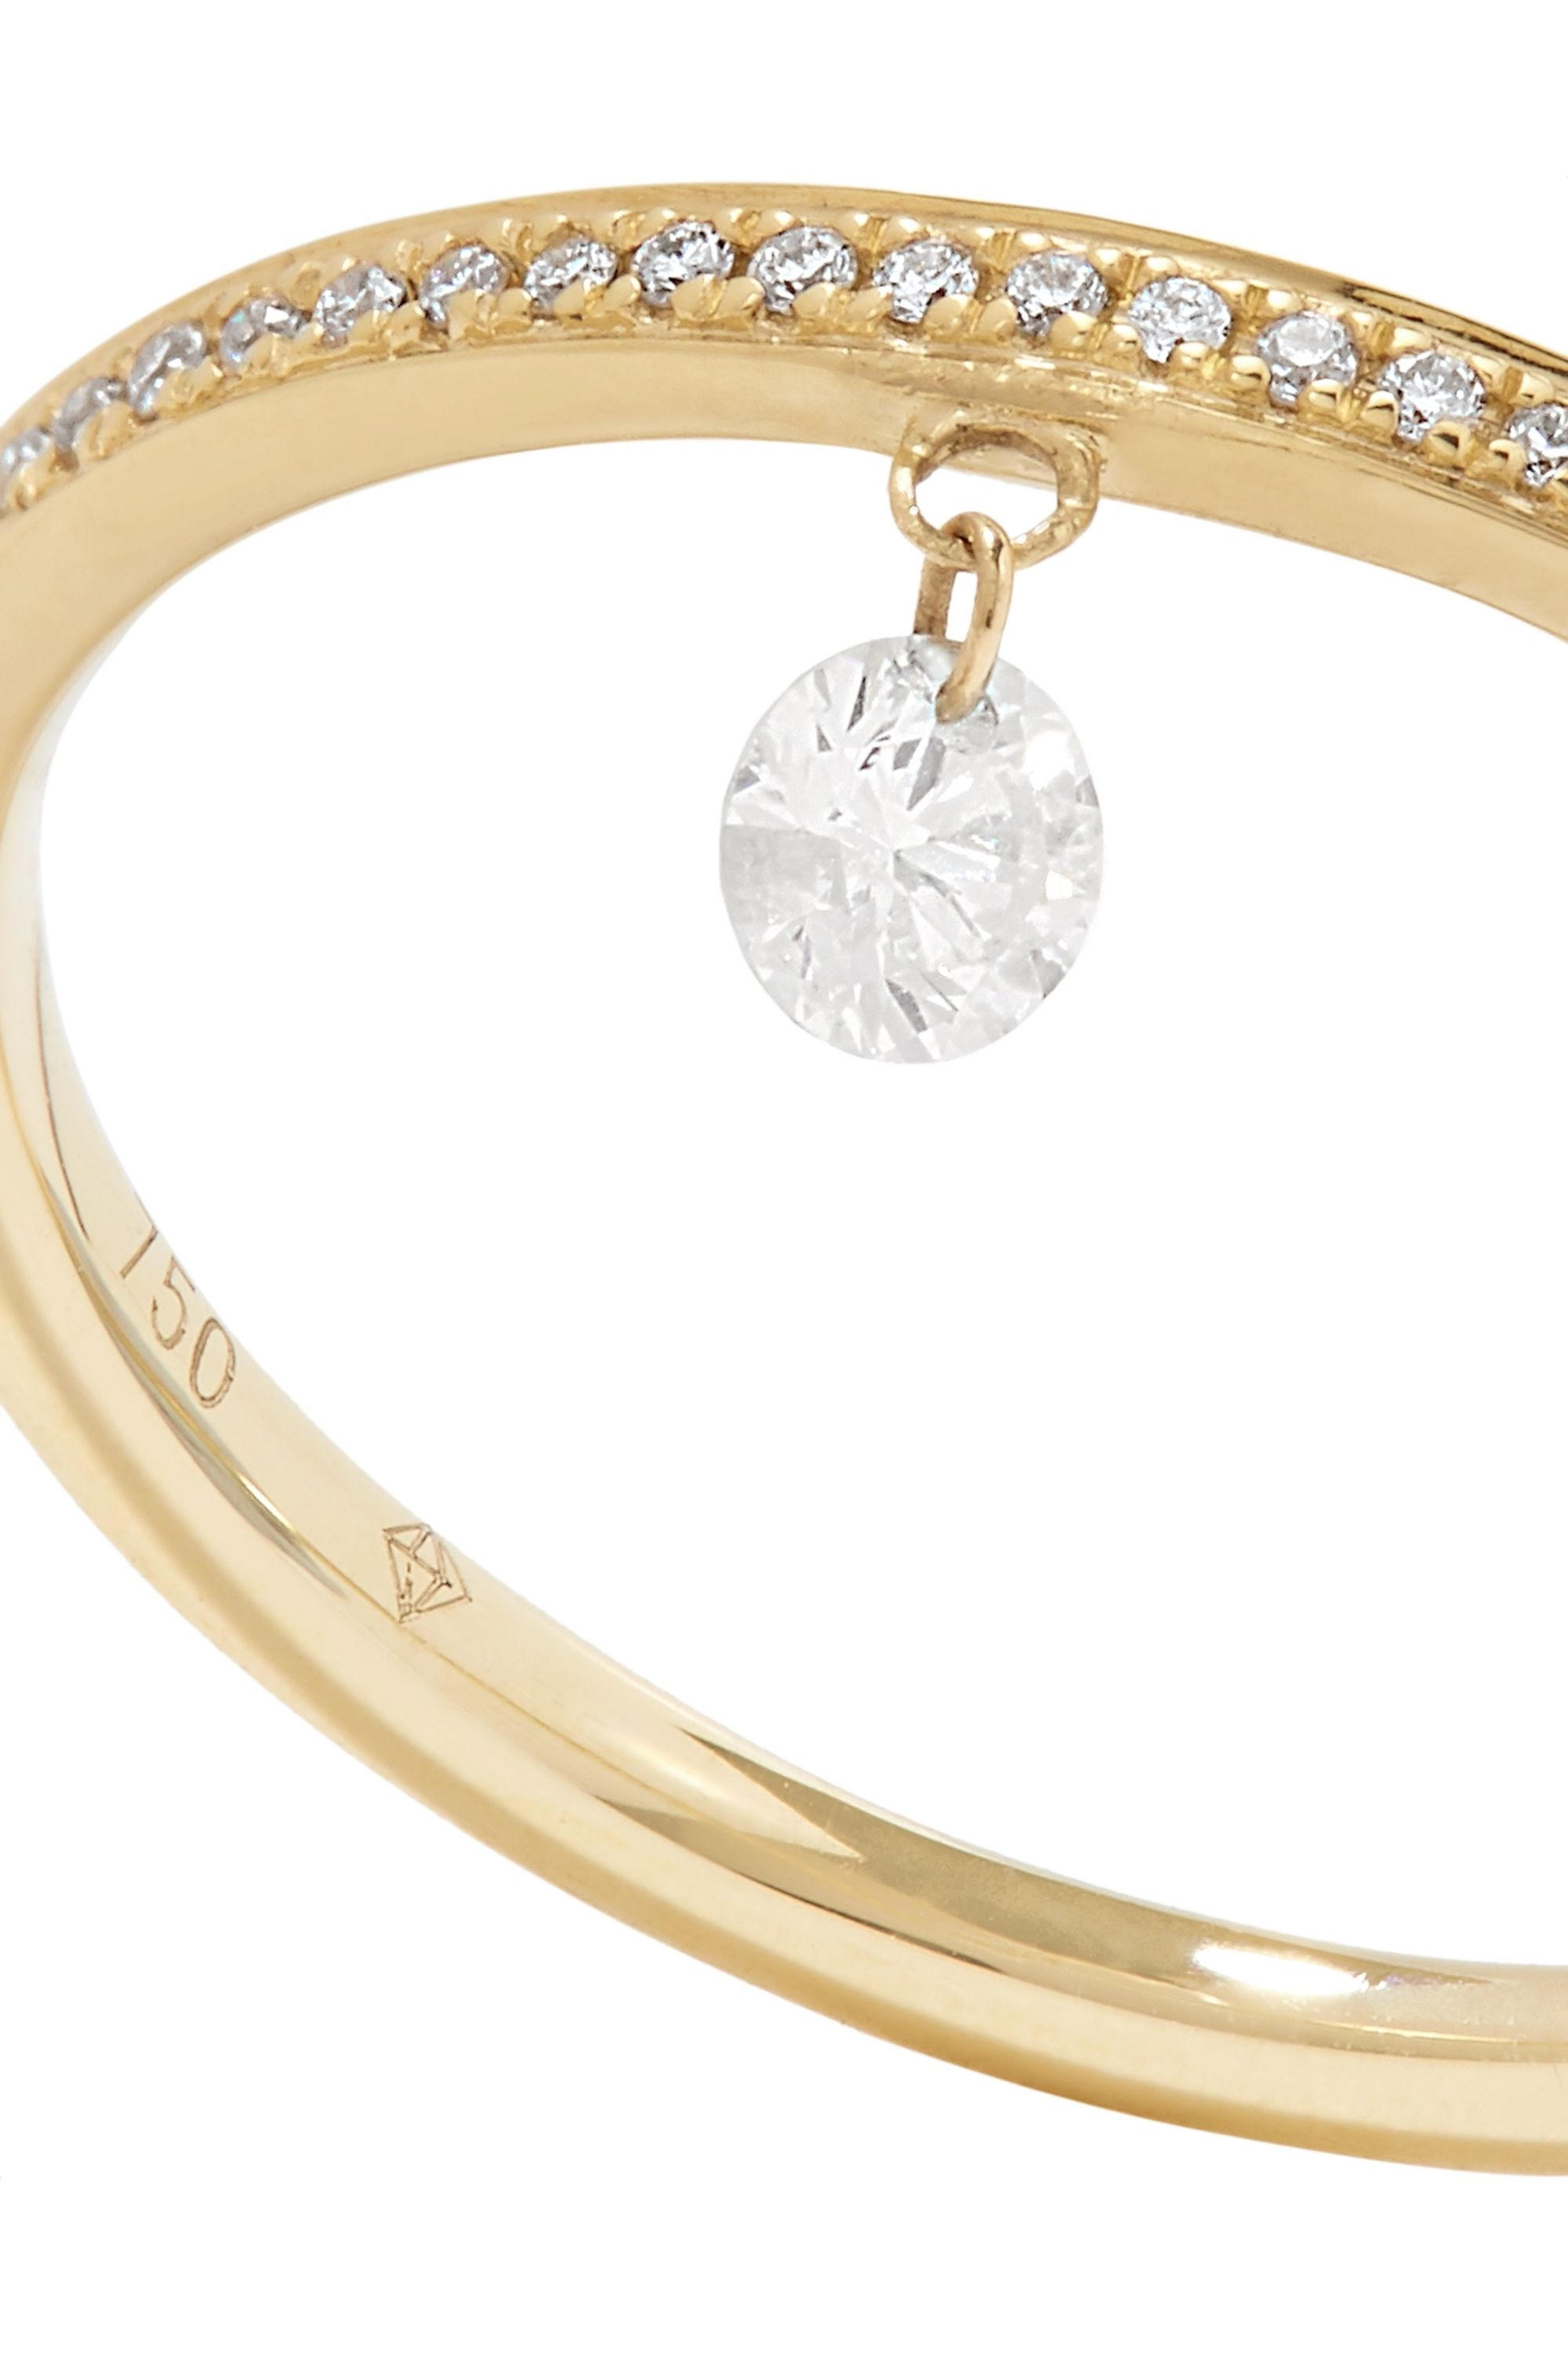 Persée Zeus 18-karat gold diamond ring